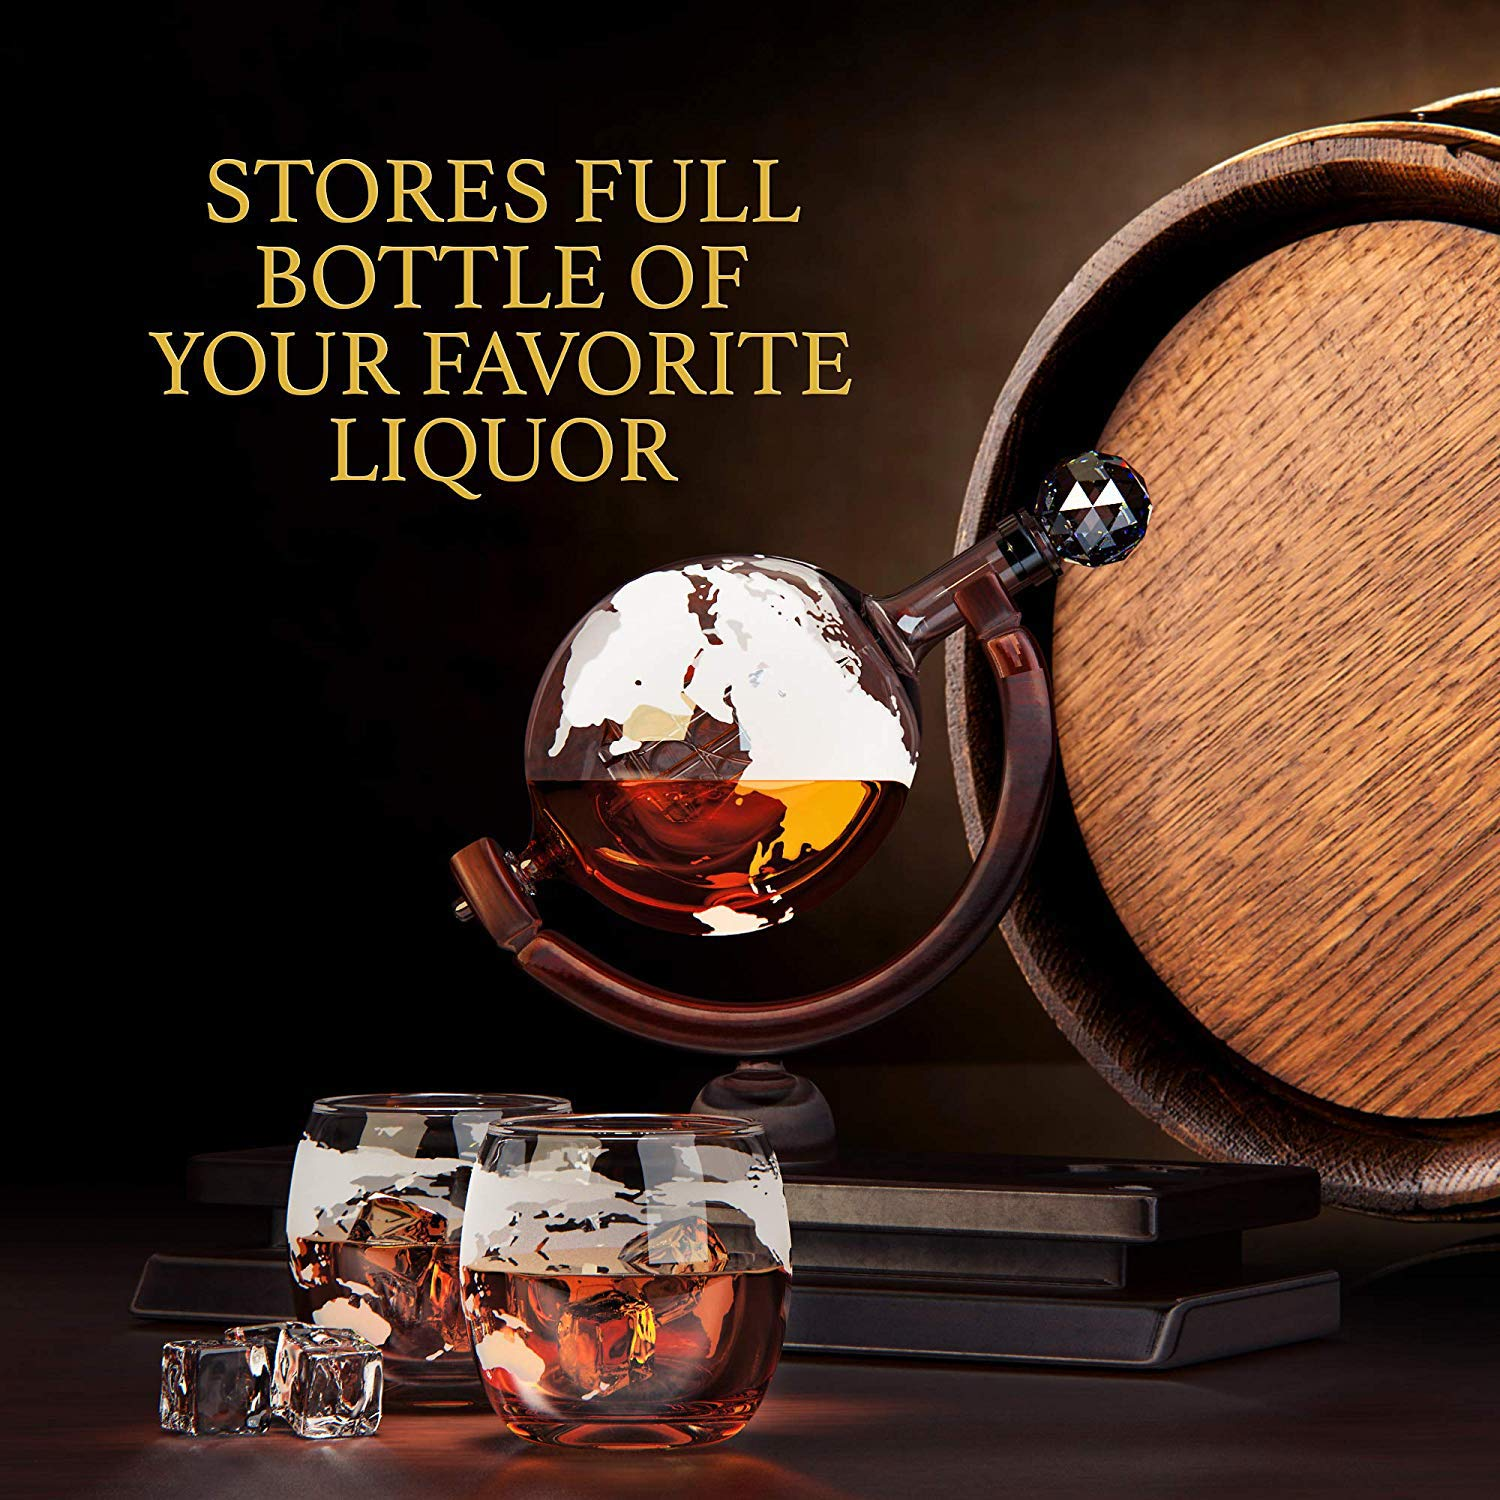 Globe Whiskey Decanter and Glass Set - Double Thickness Glass and Crystal Stopper - Liquor Decanter and Dispenser by Golden Baron (Image #2)